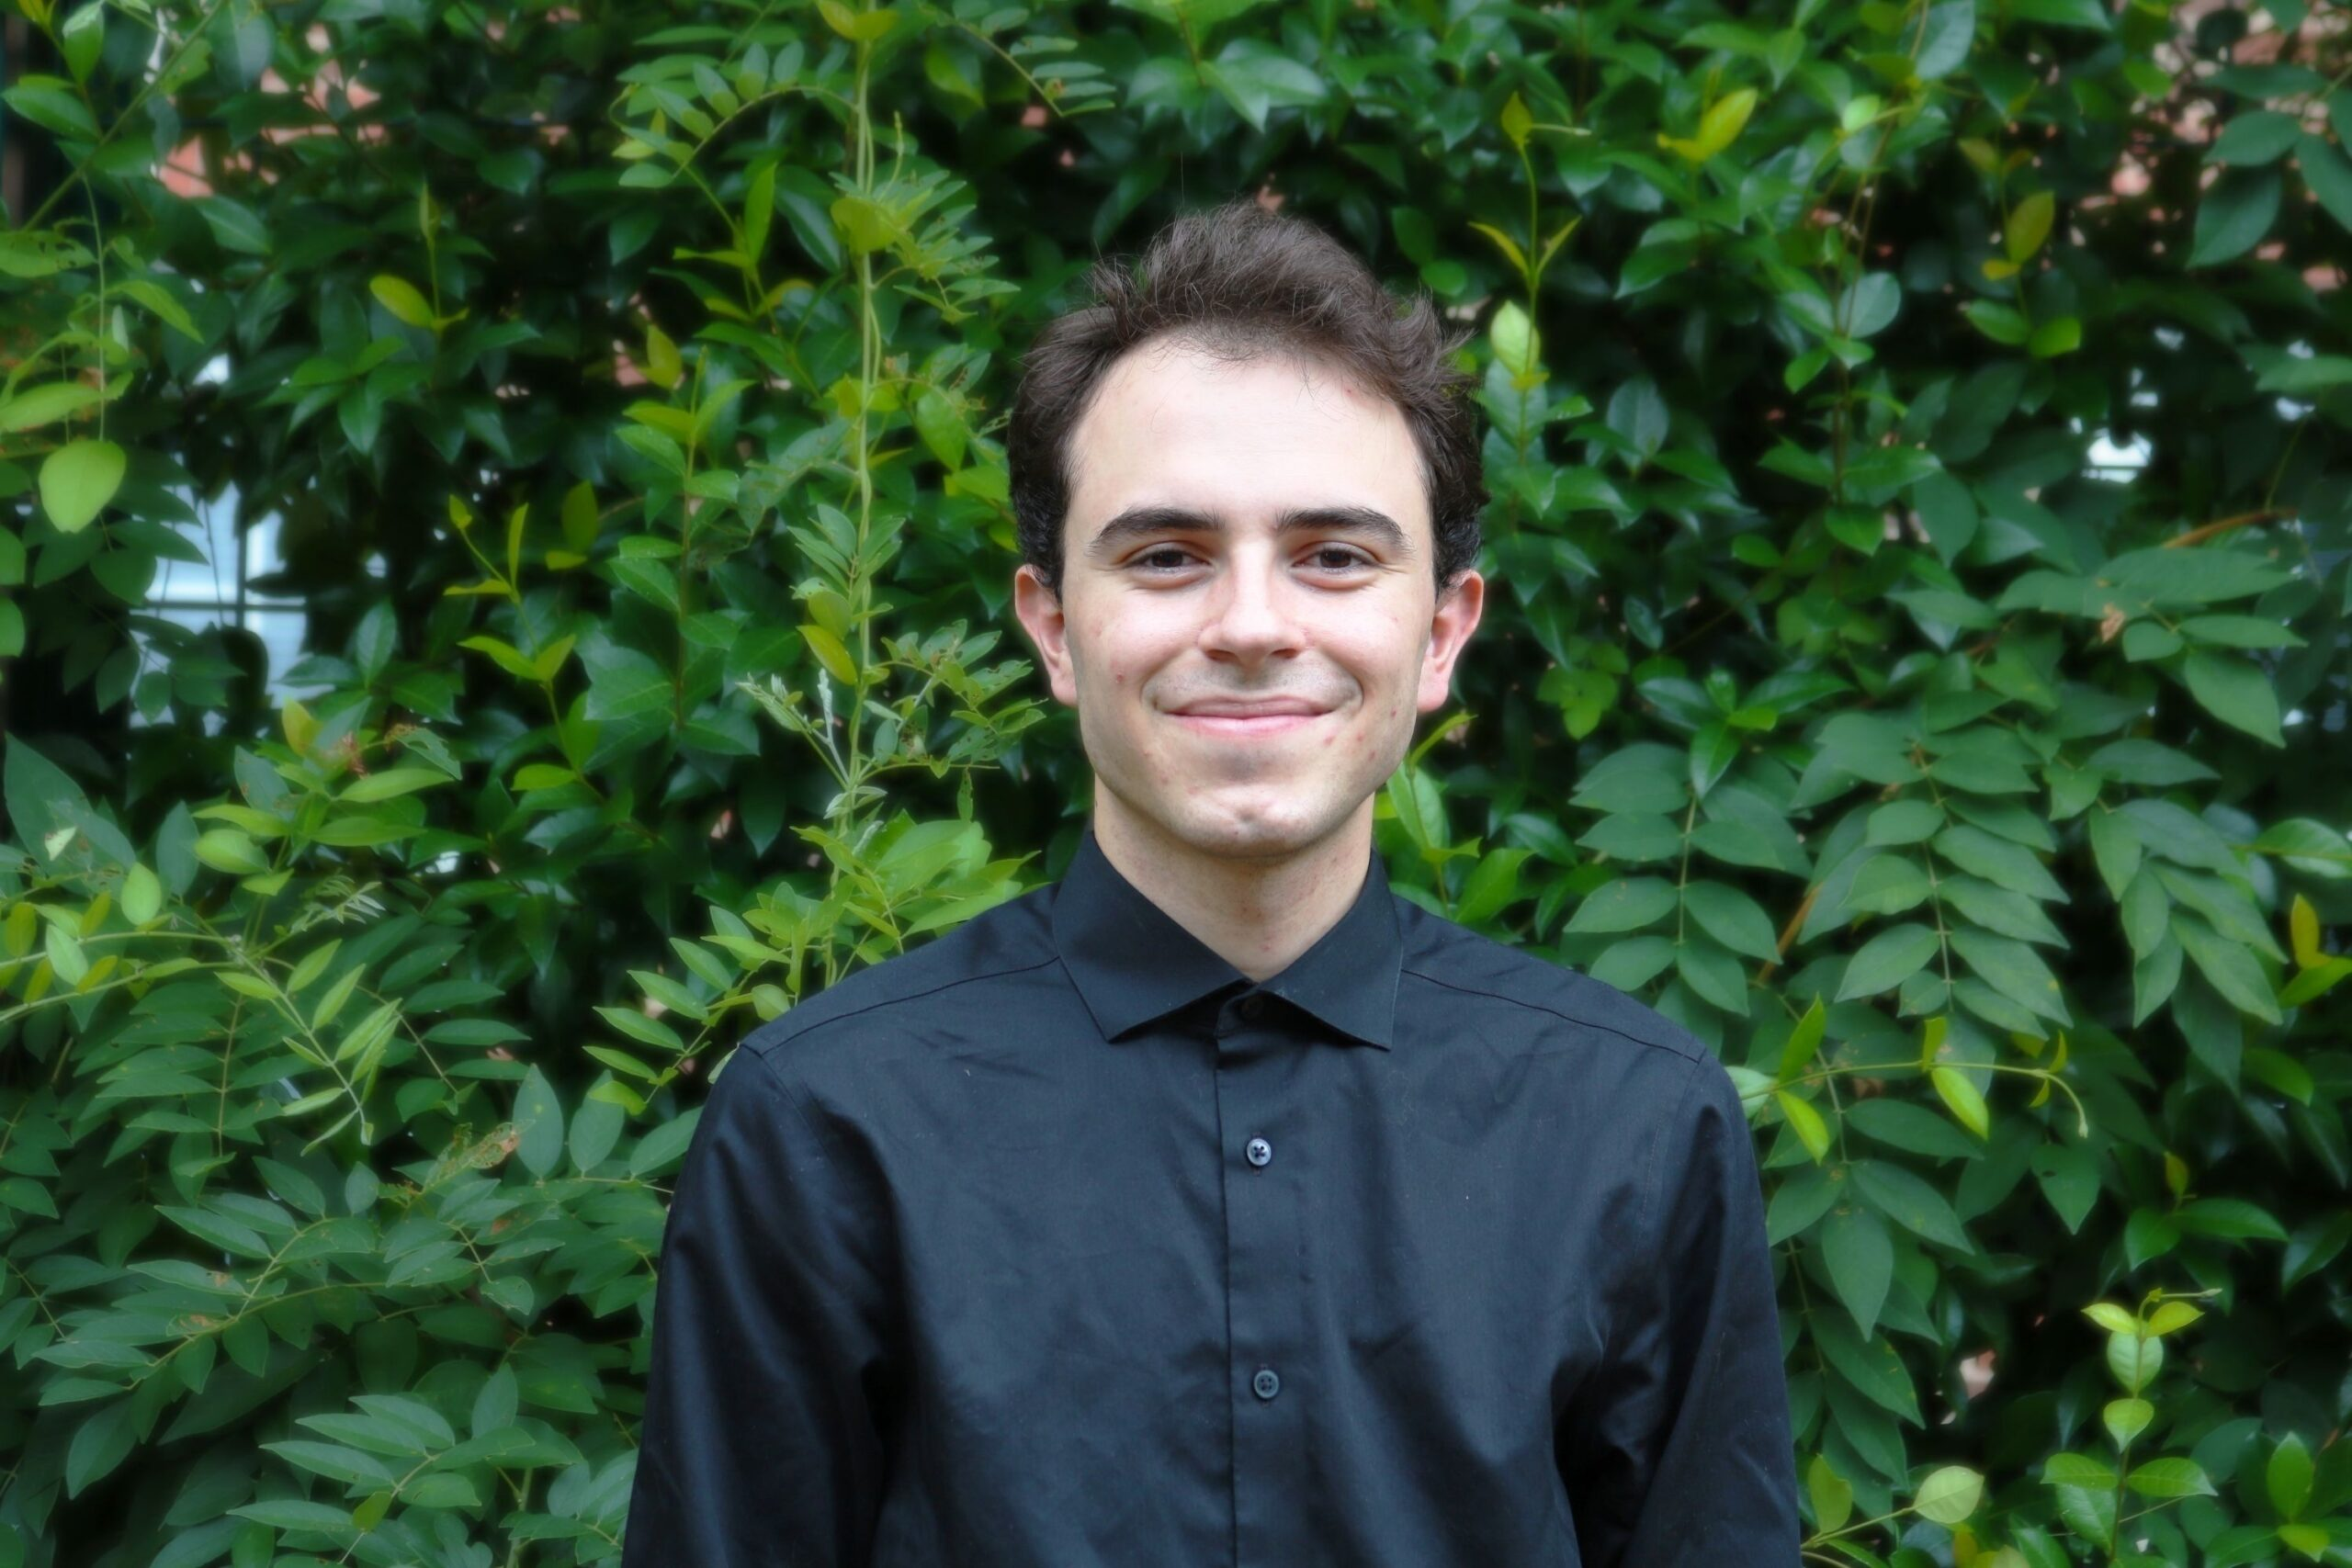 young white male in black dress shirt smiling in front of greenery wall